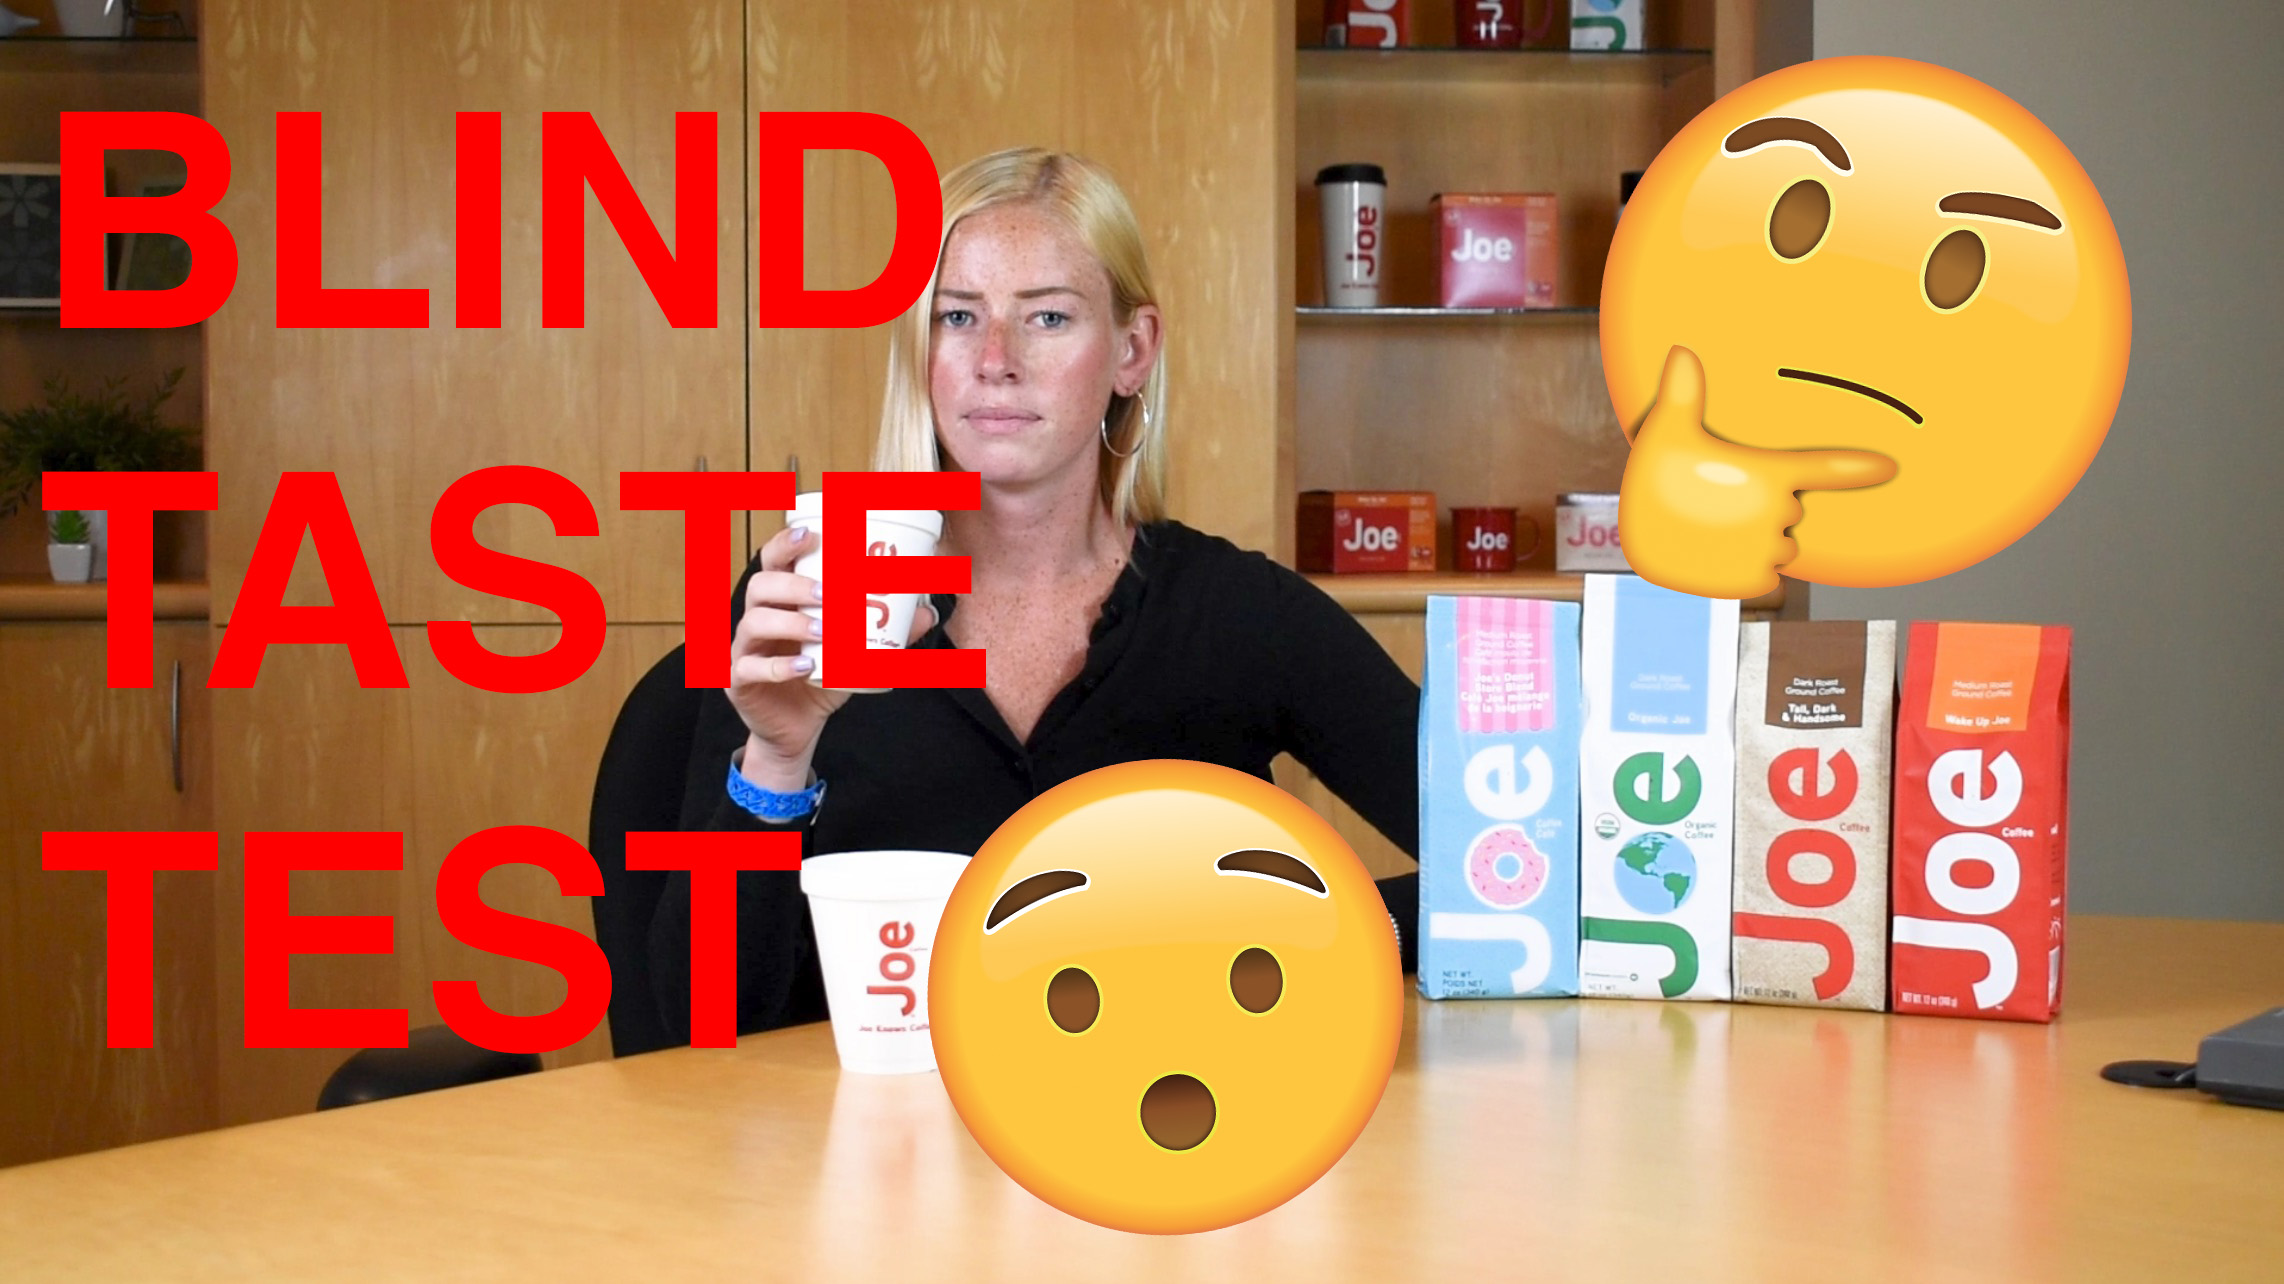 Coffee taste test video thumbnail.jpg